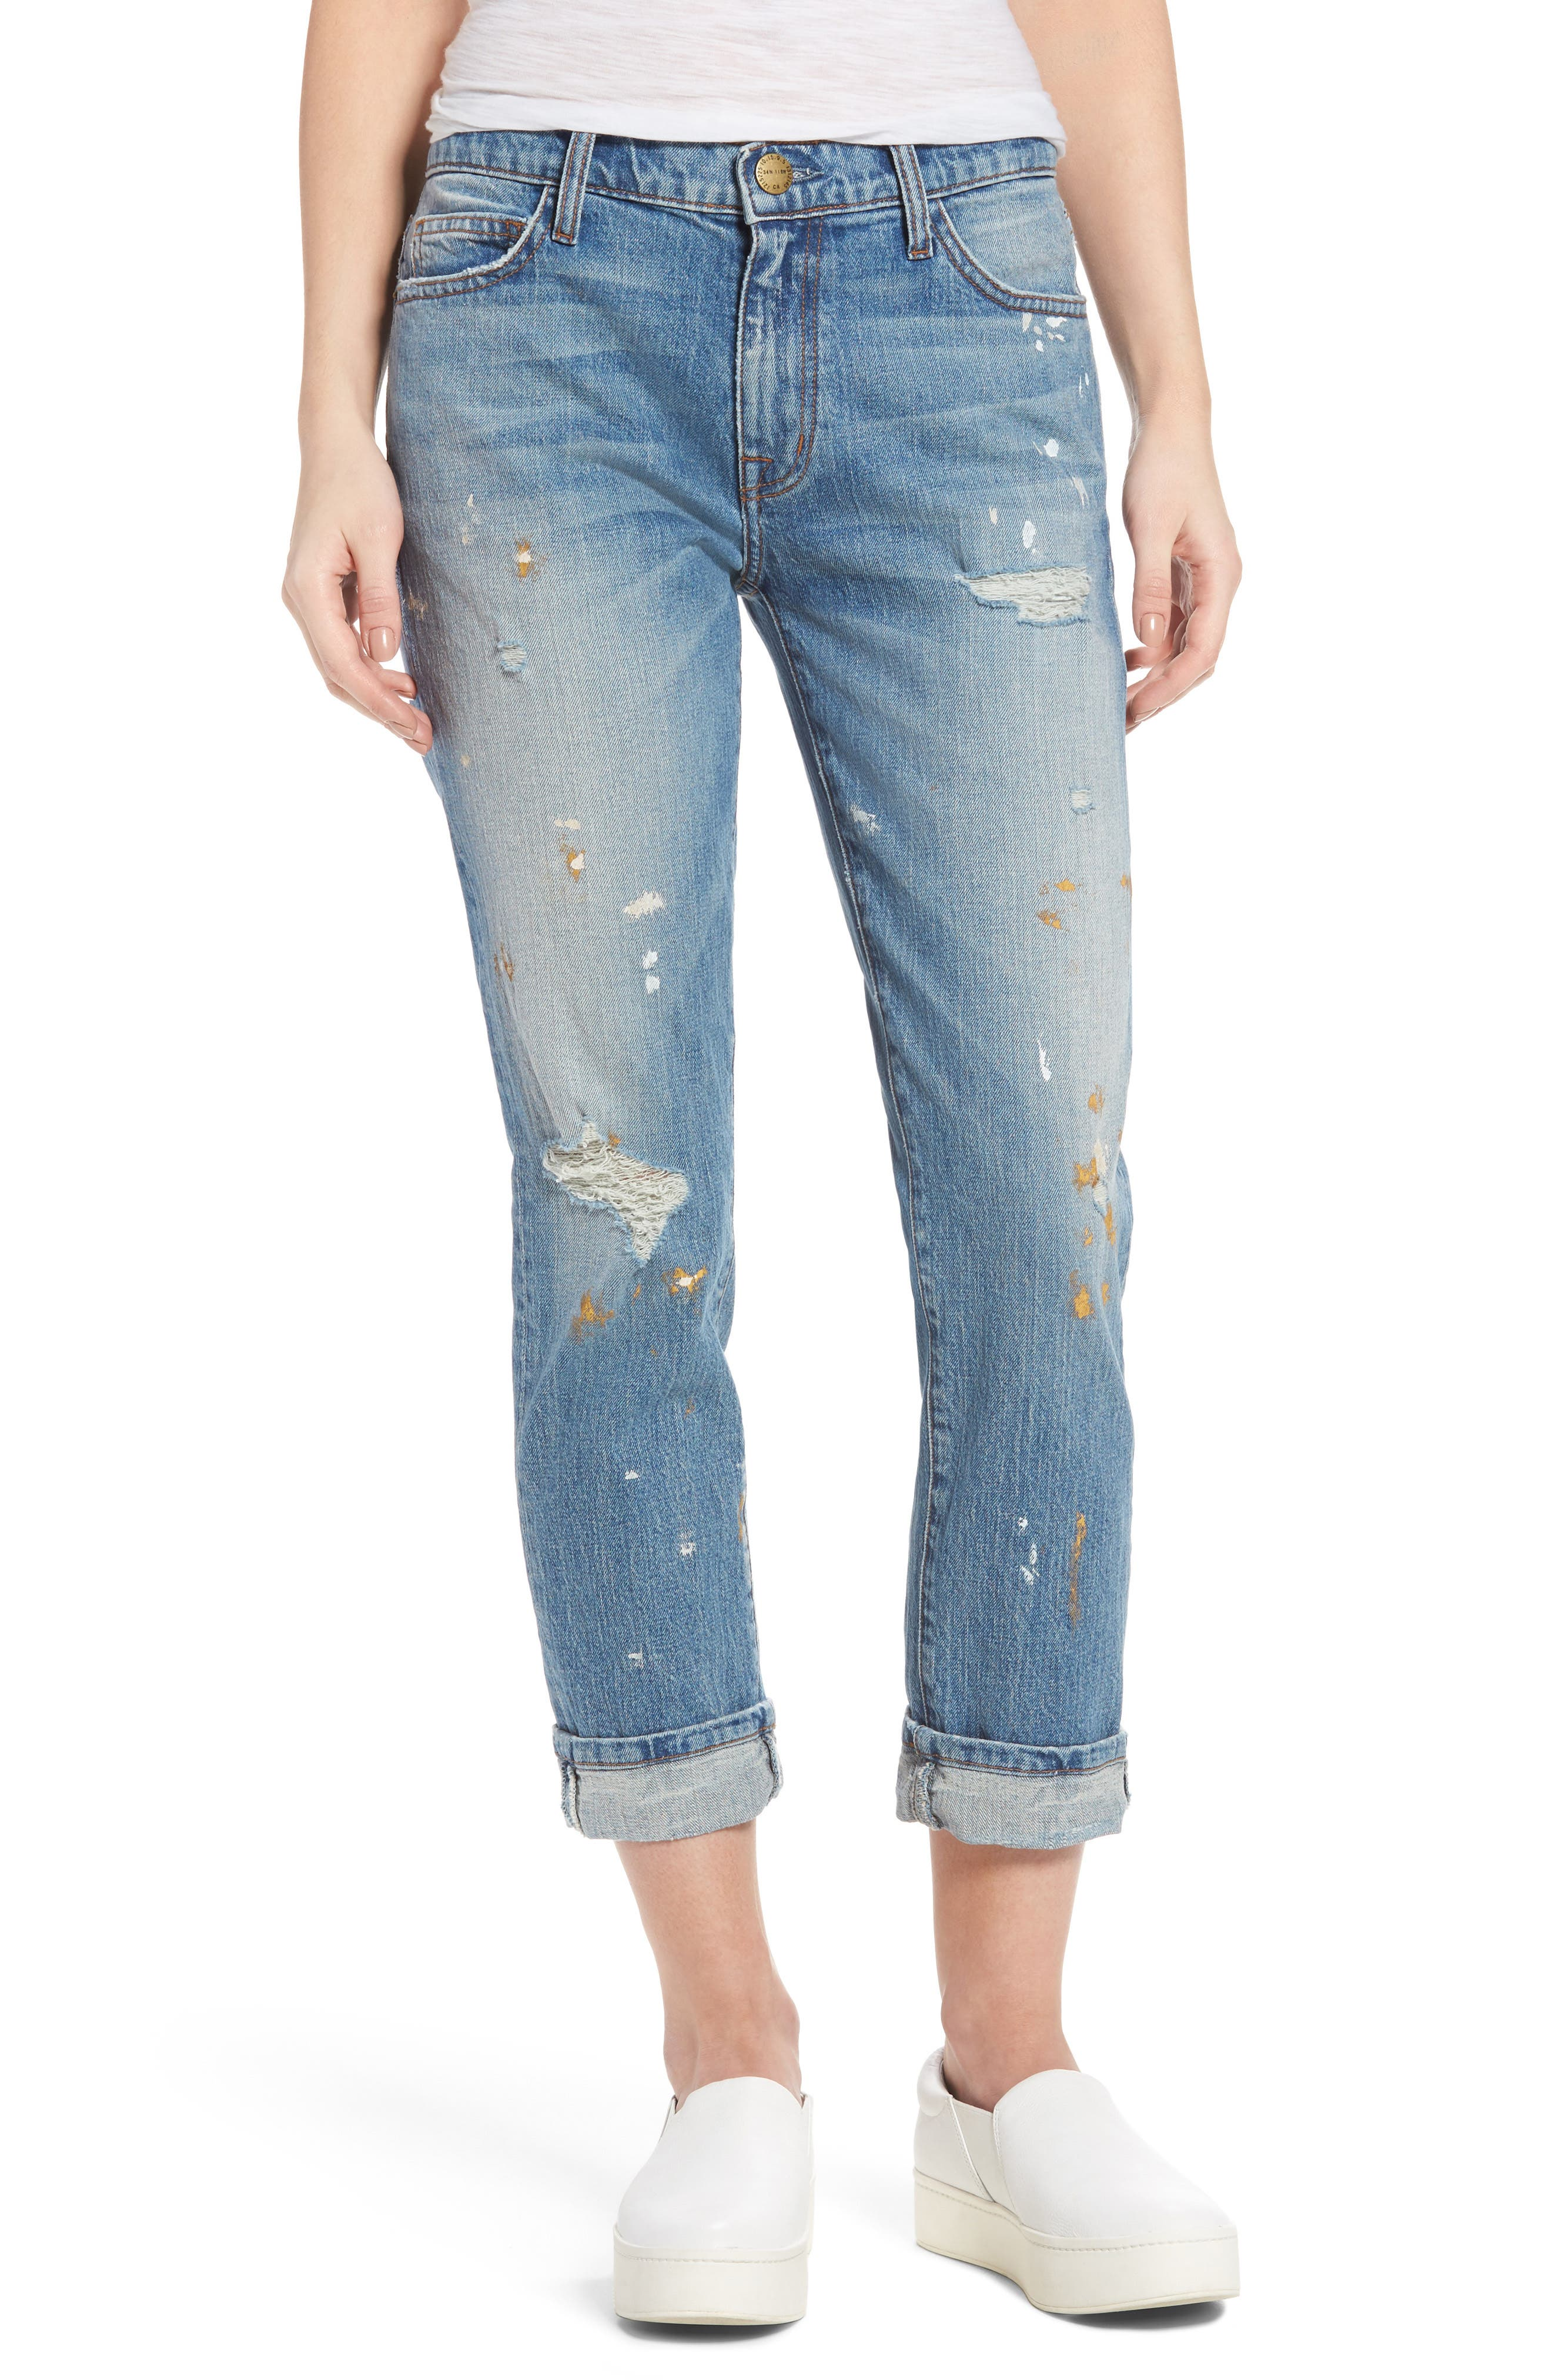 Fling Distressed Rolled Jeans,                             Main thumbnail 1, color,                             469